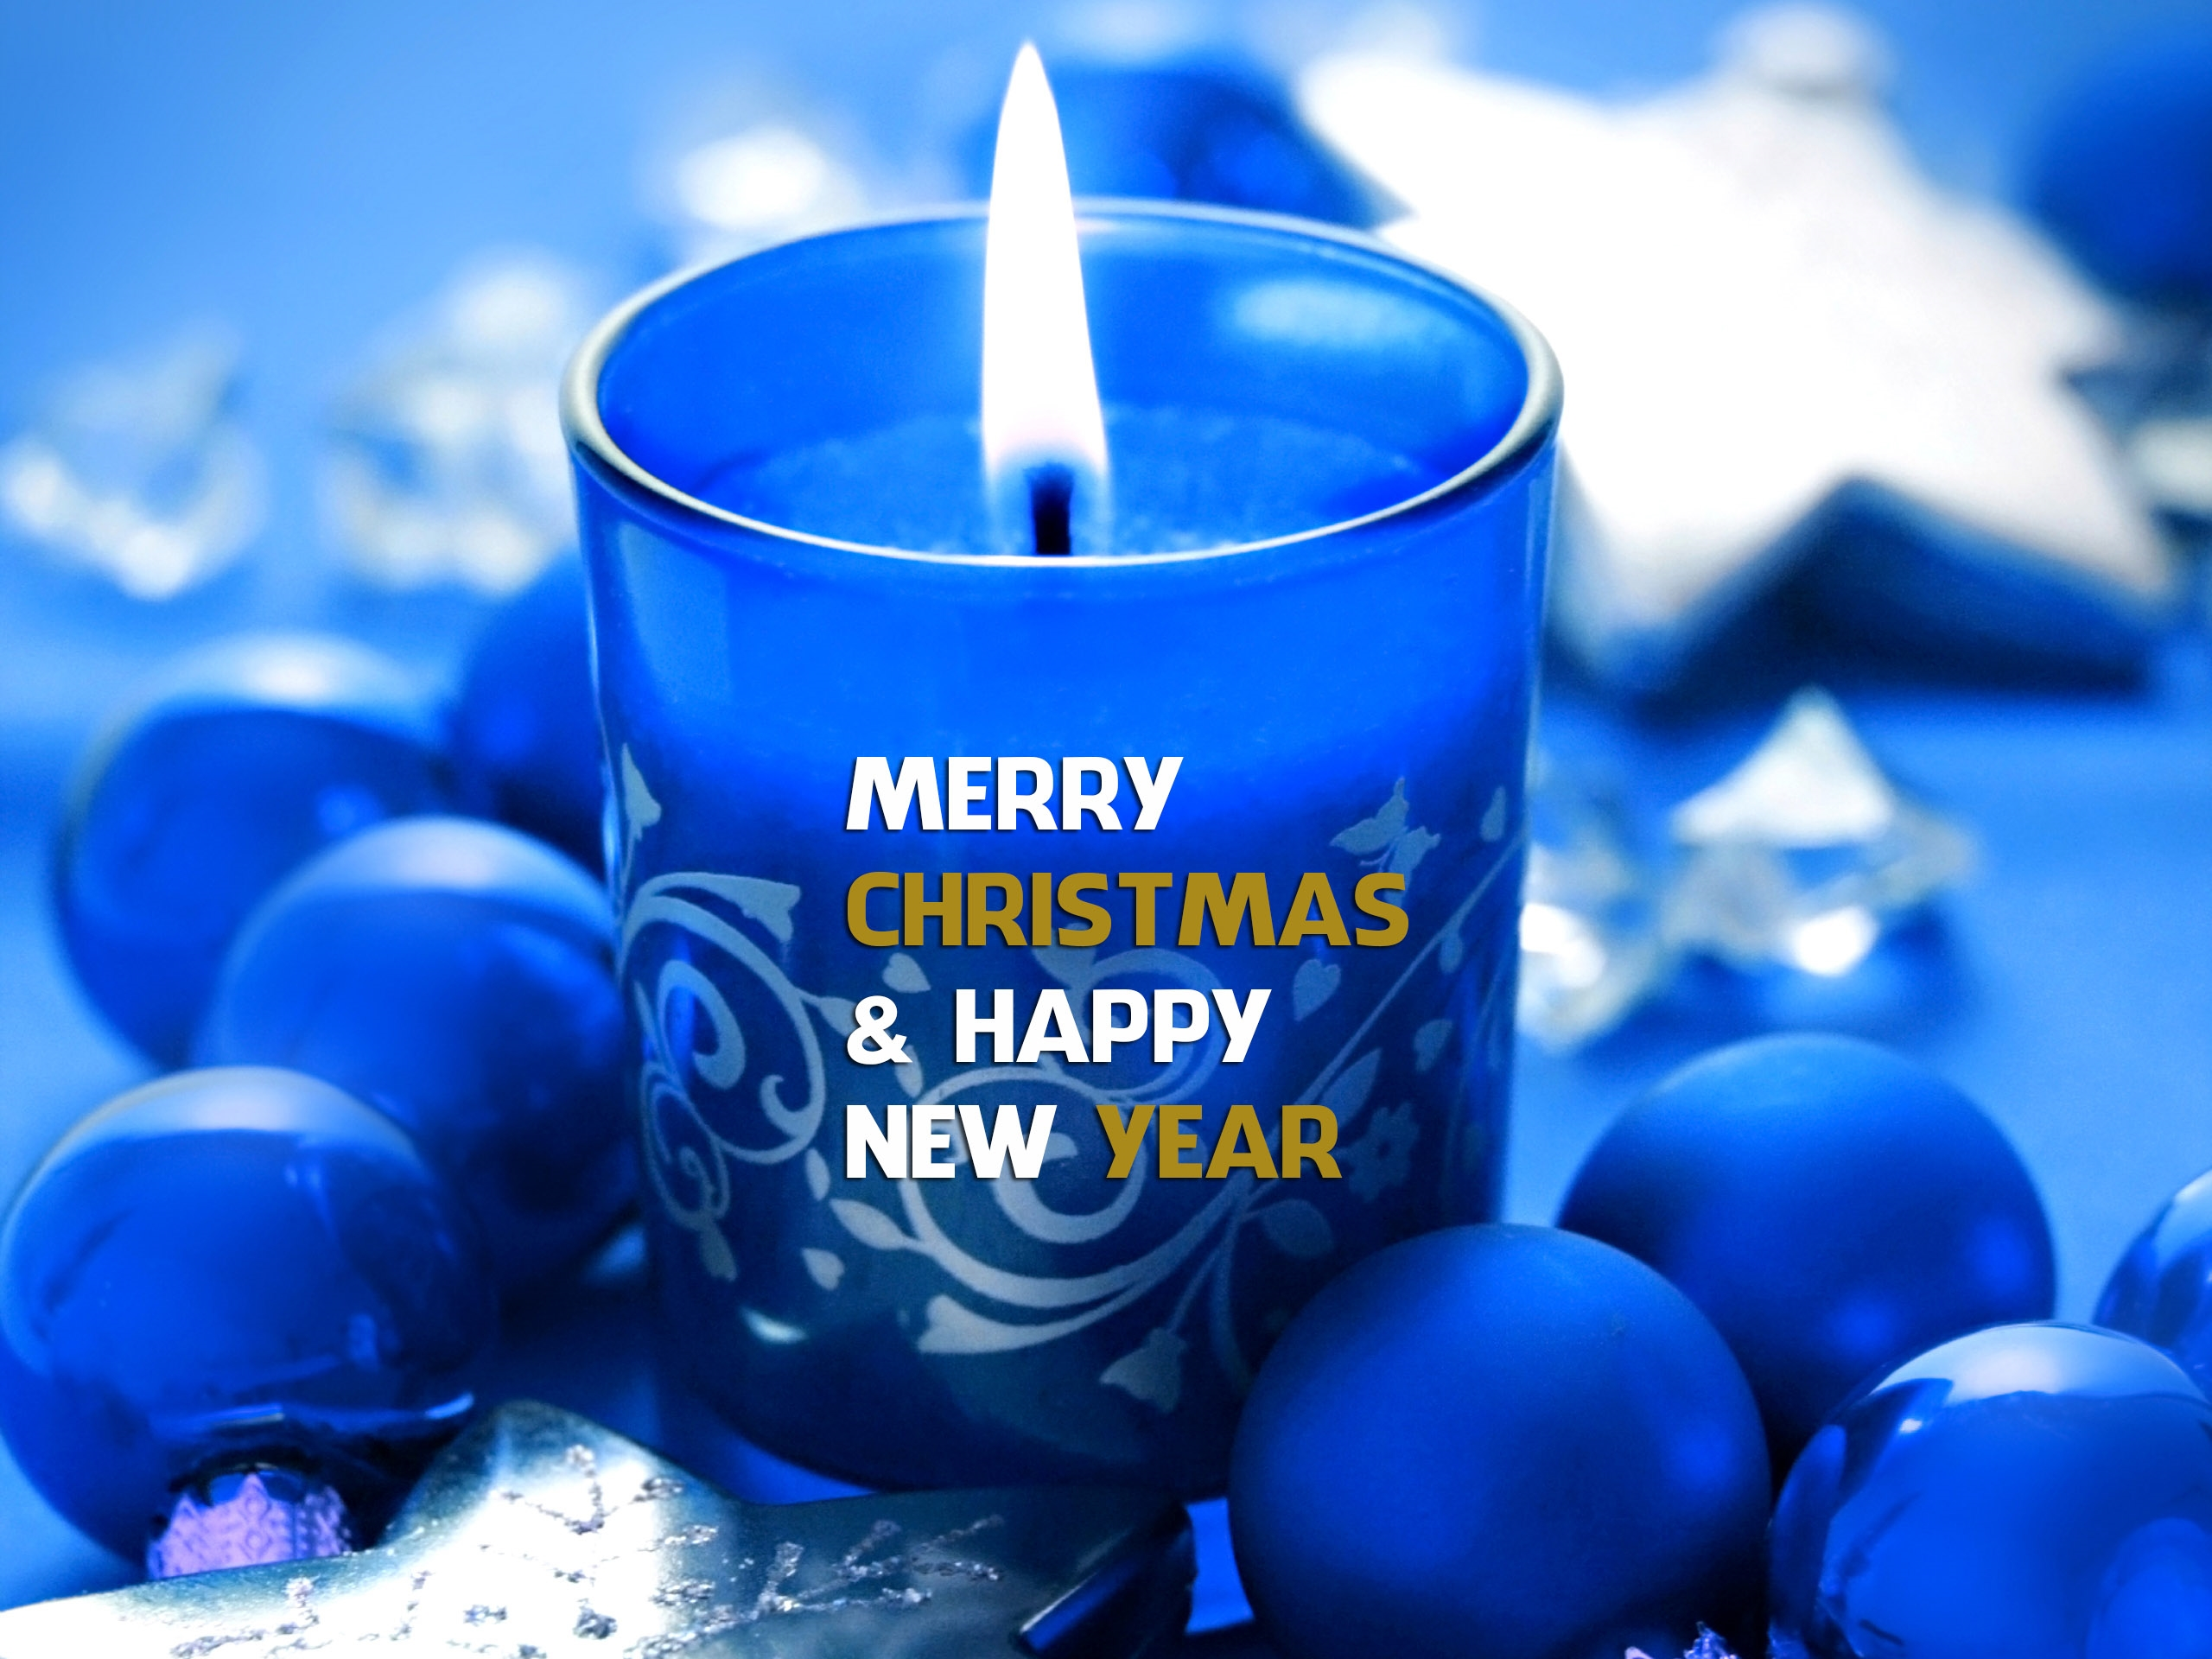 Happy New Year And Merry Christmas Hd Wallpaper   Whatsapp Profile 2560x1920